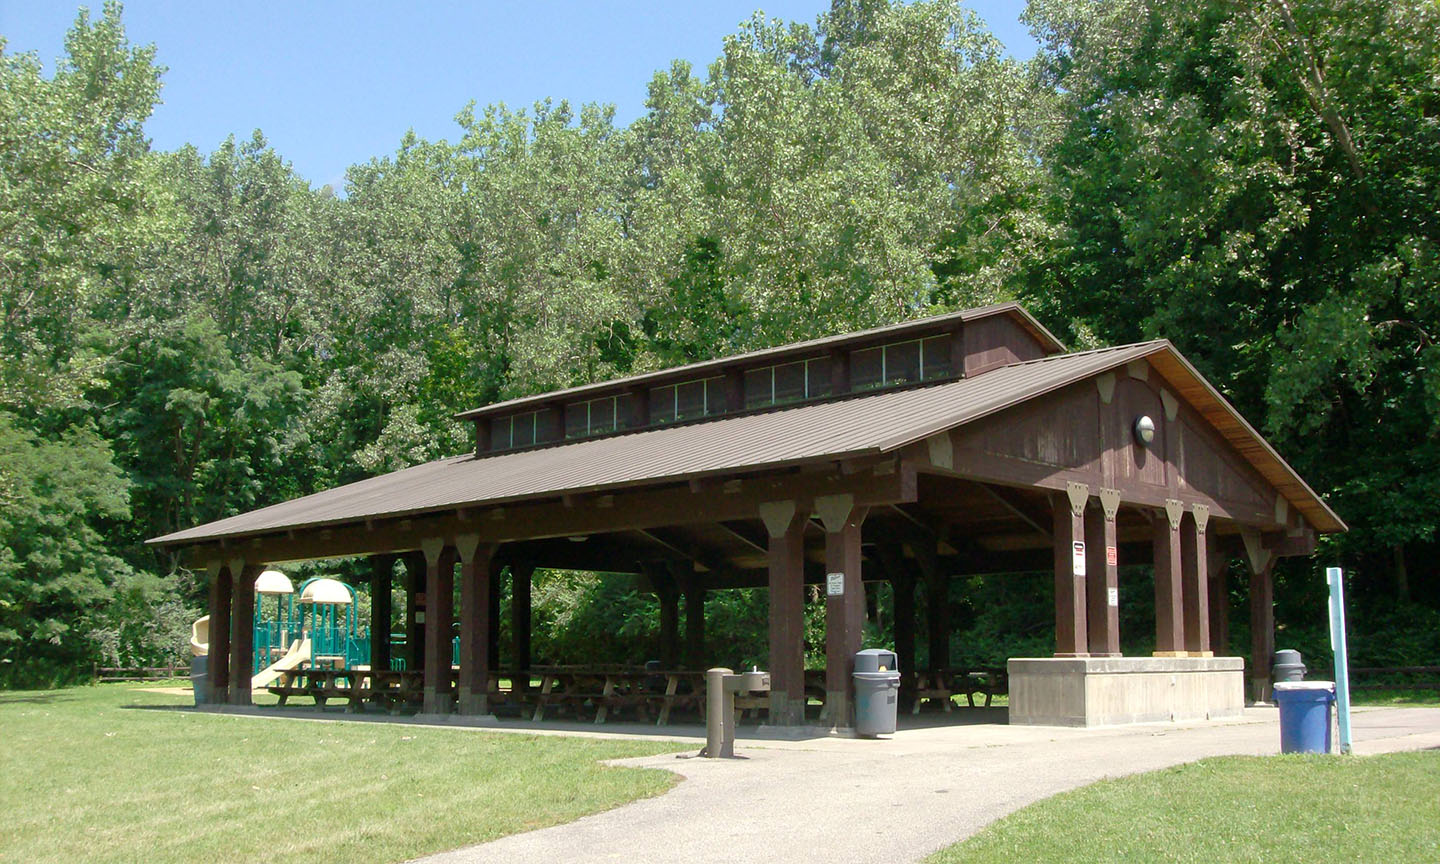 Morgan S Hollow Picnic Area Cleveland Metroparks